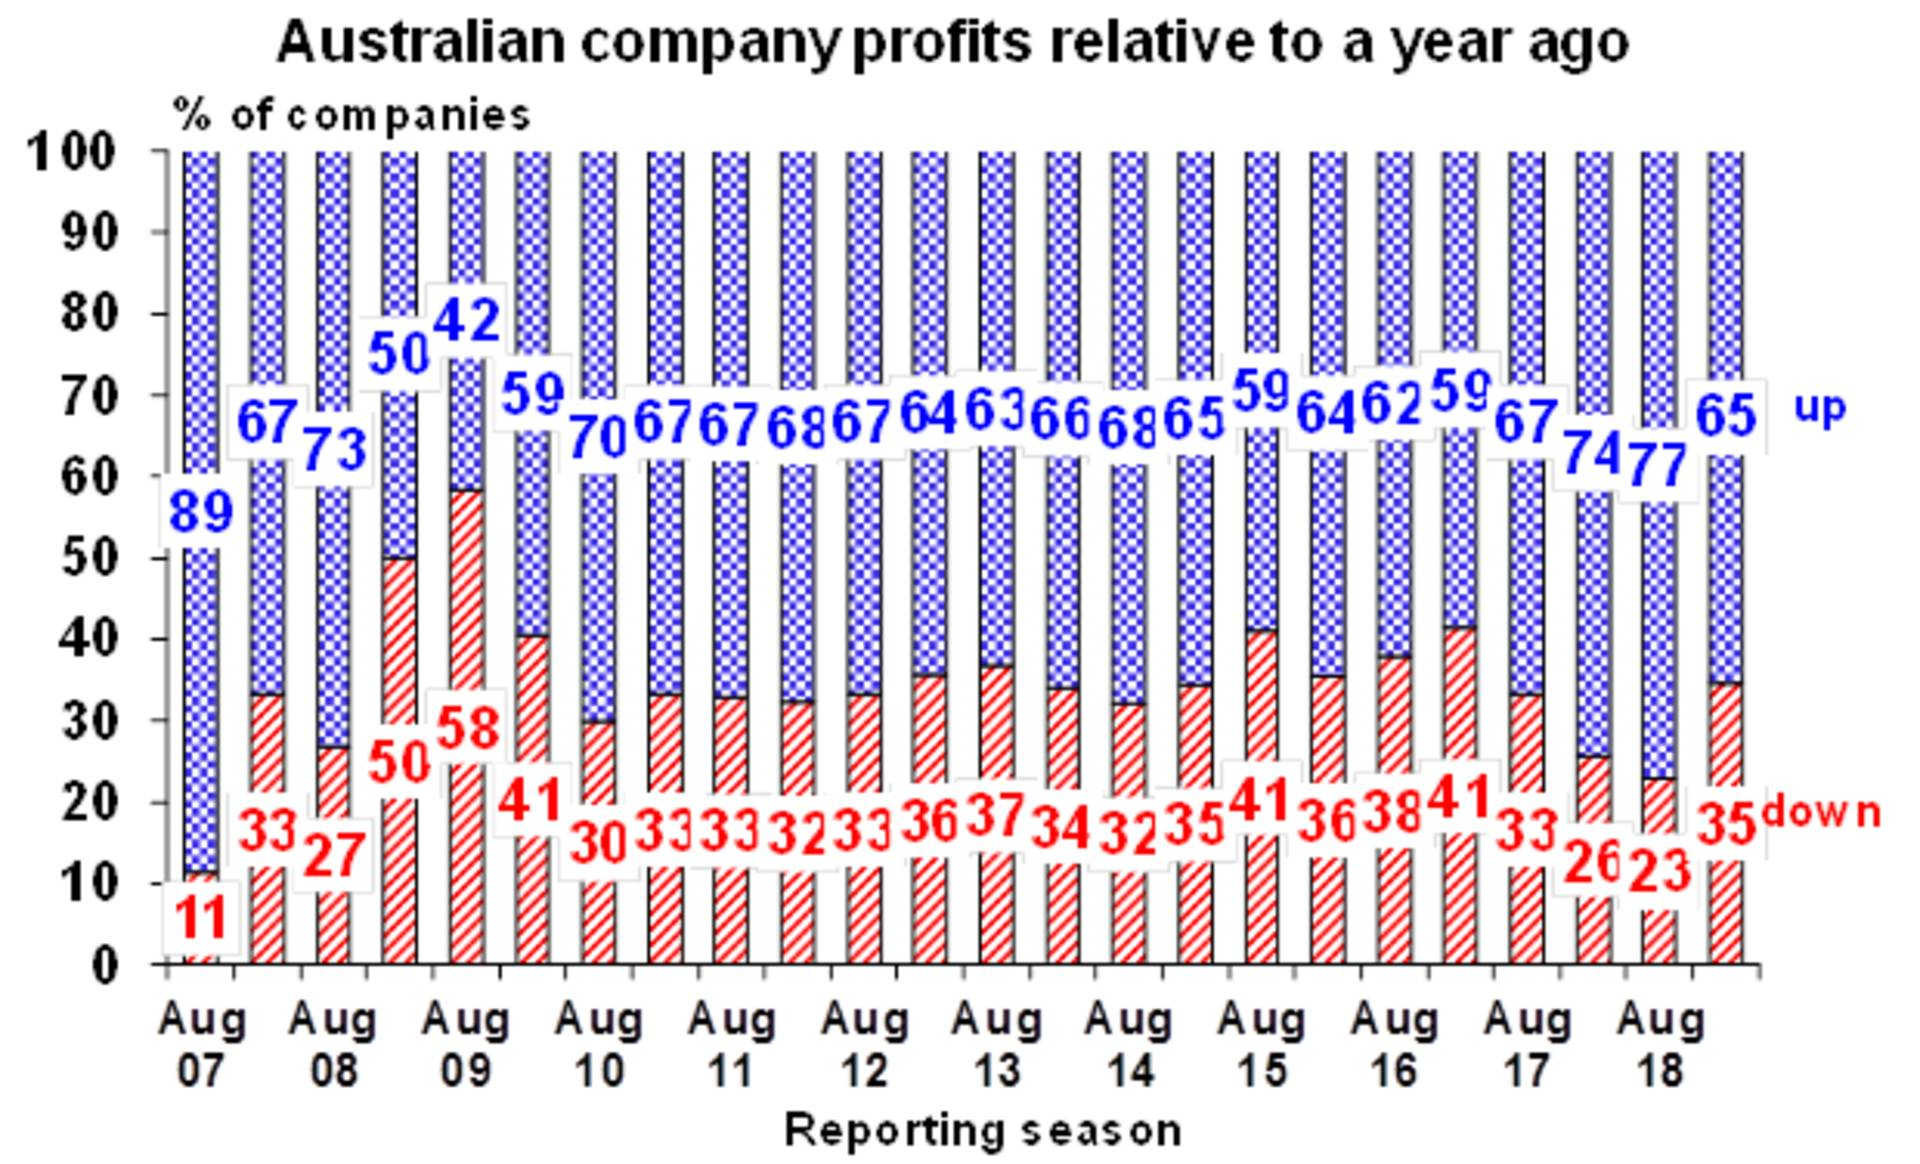 Australian company profit results relative to a year ago